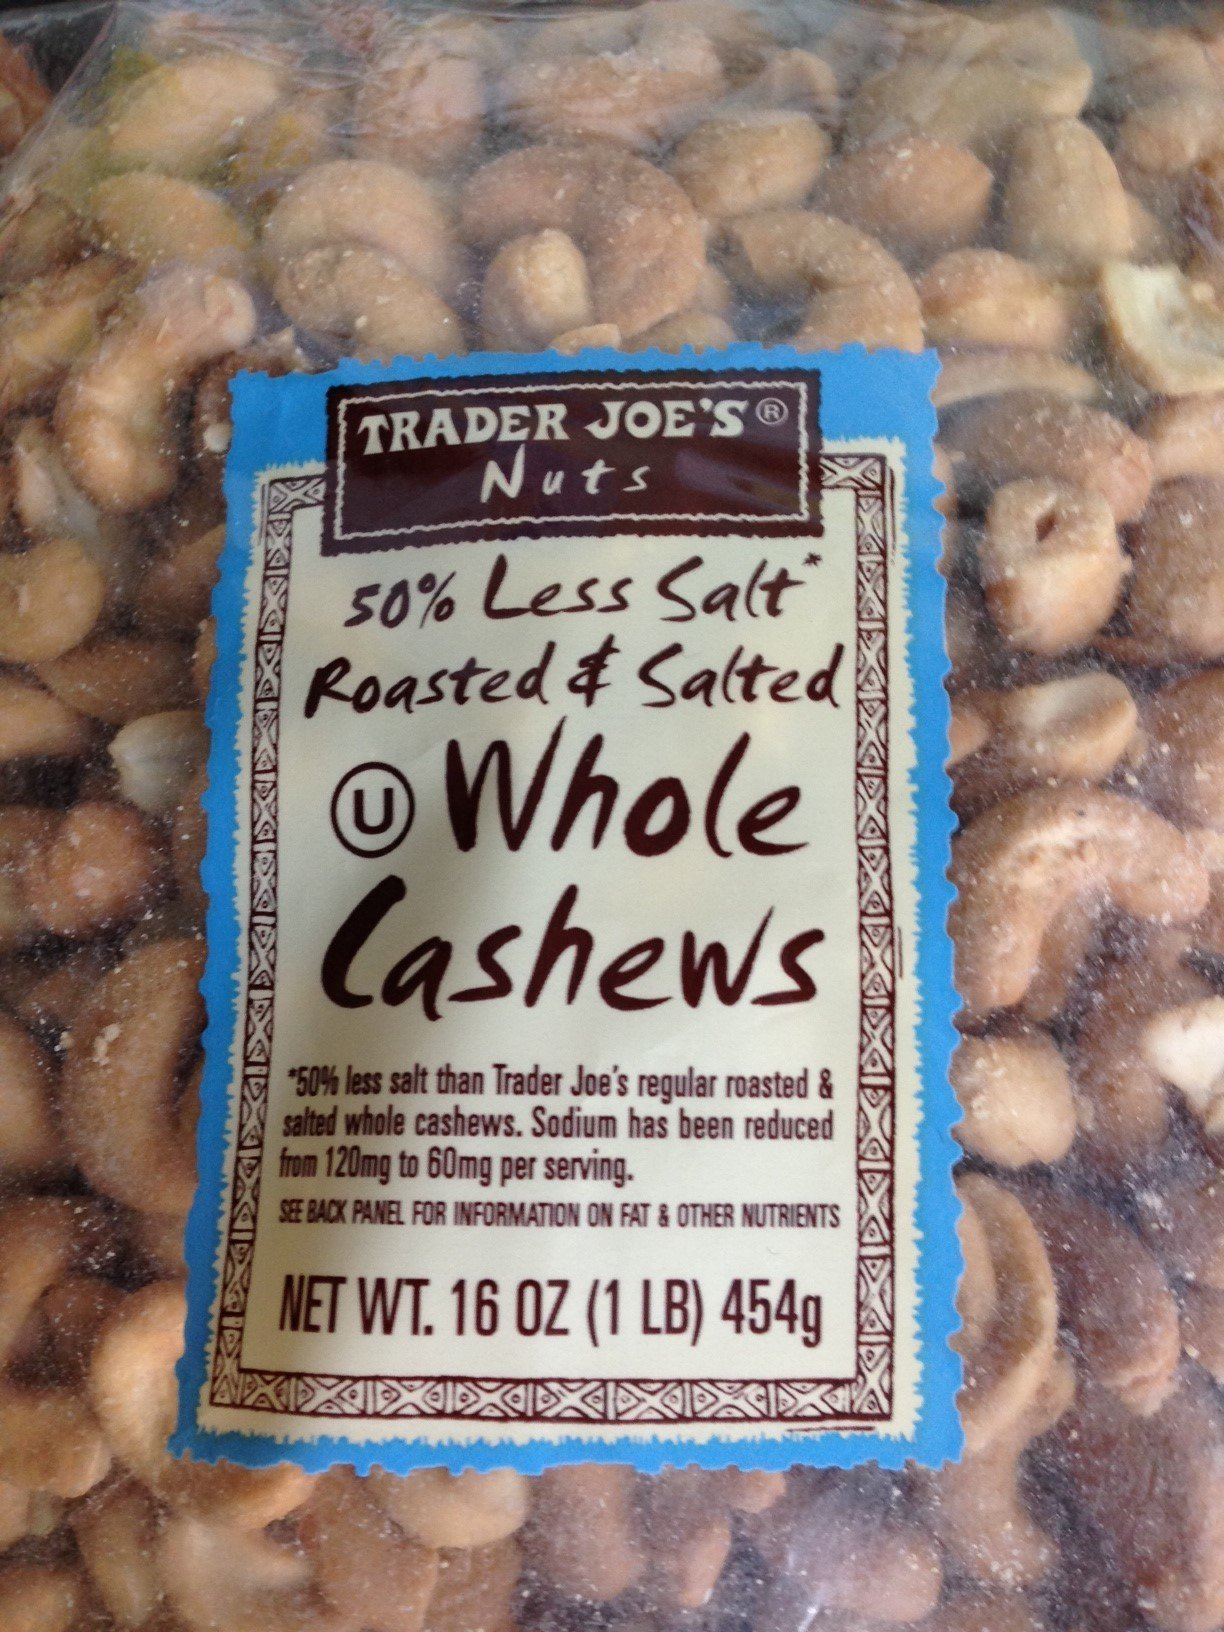 Trader Joe's 50% Less Salt - Roasted & Salted - Whole CASHEWS